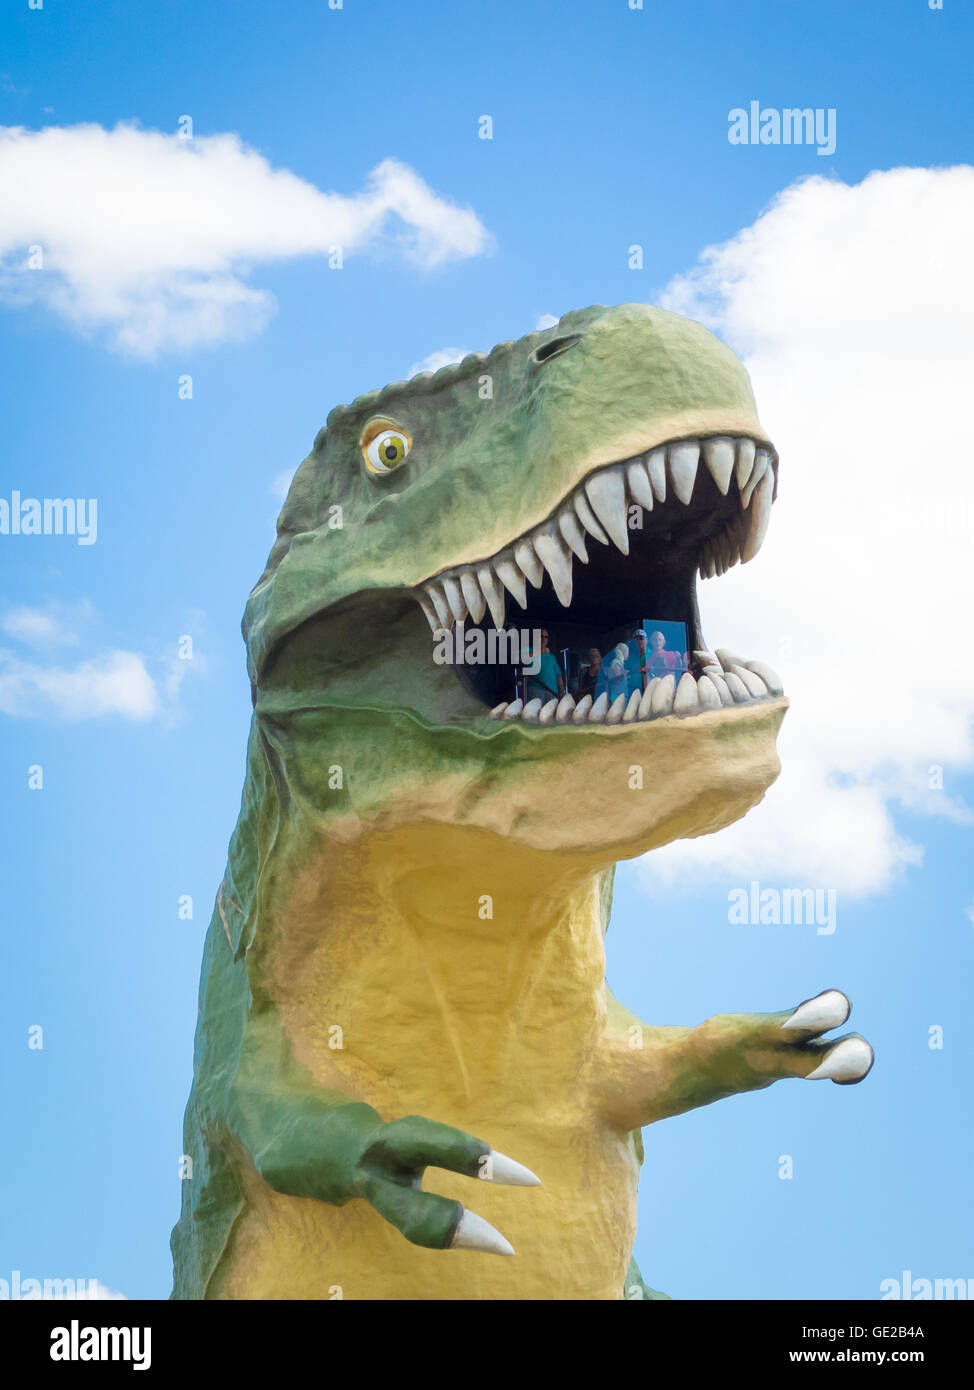 The World's Largest Dinosaur - a 82-foot (46 m) high Tyrannosaurus rex - rises above Drumheller, Alberta, Canada. - Stock Image